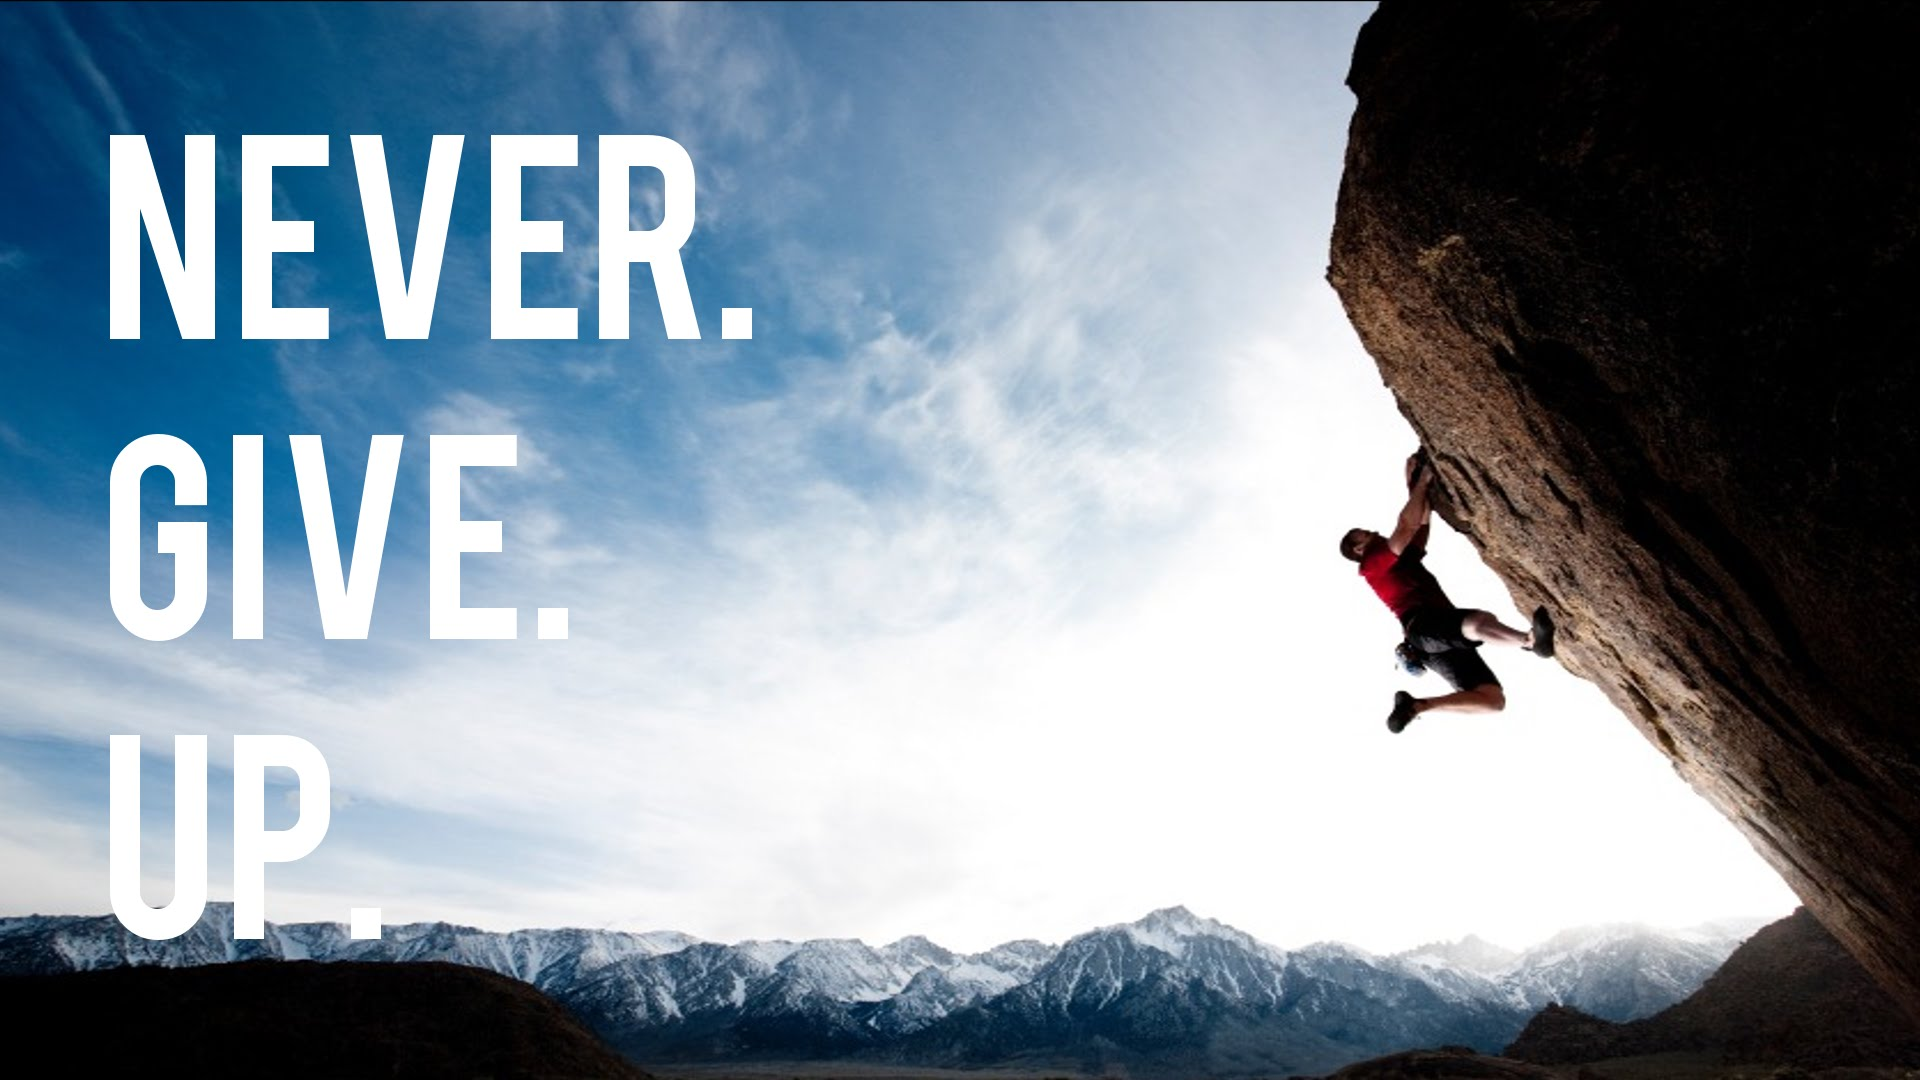 """IF YOU DO WHAT IS EASY, YOUR LIFE WILL BE HARD"" - NEVER GIVE UP! (MOTIVATIONAL VIDEO)"